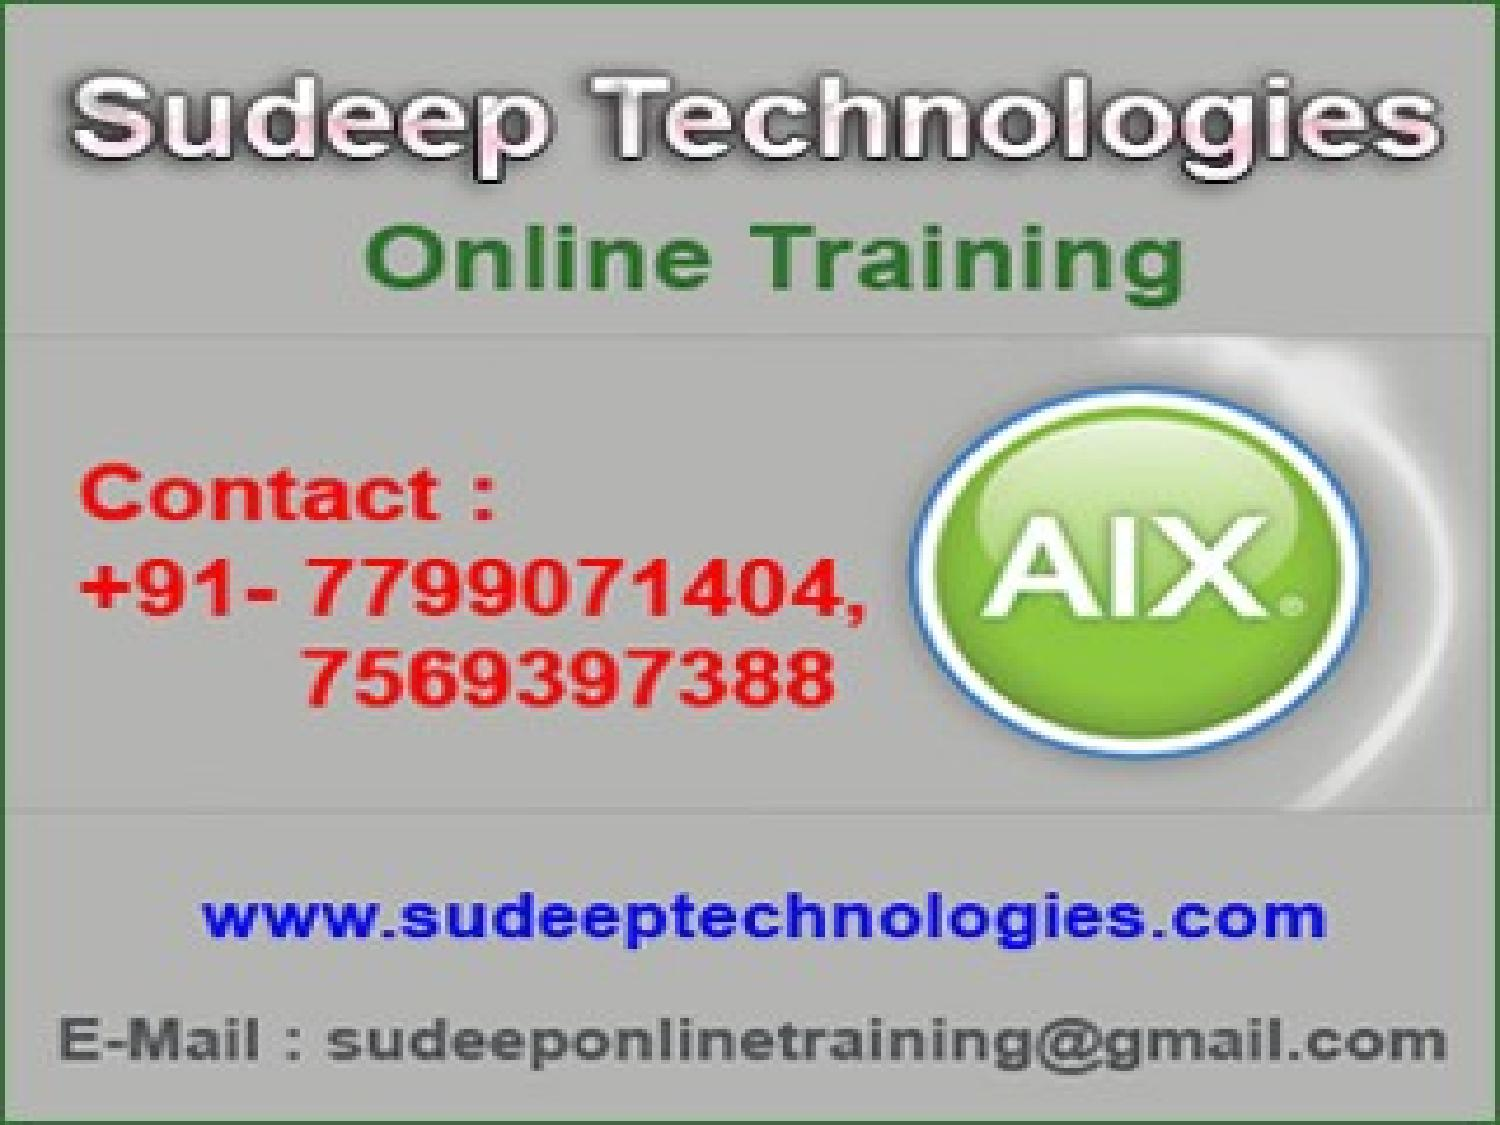 IBM aix Online Training from USA by sudeeptechnologies - issuu